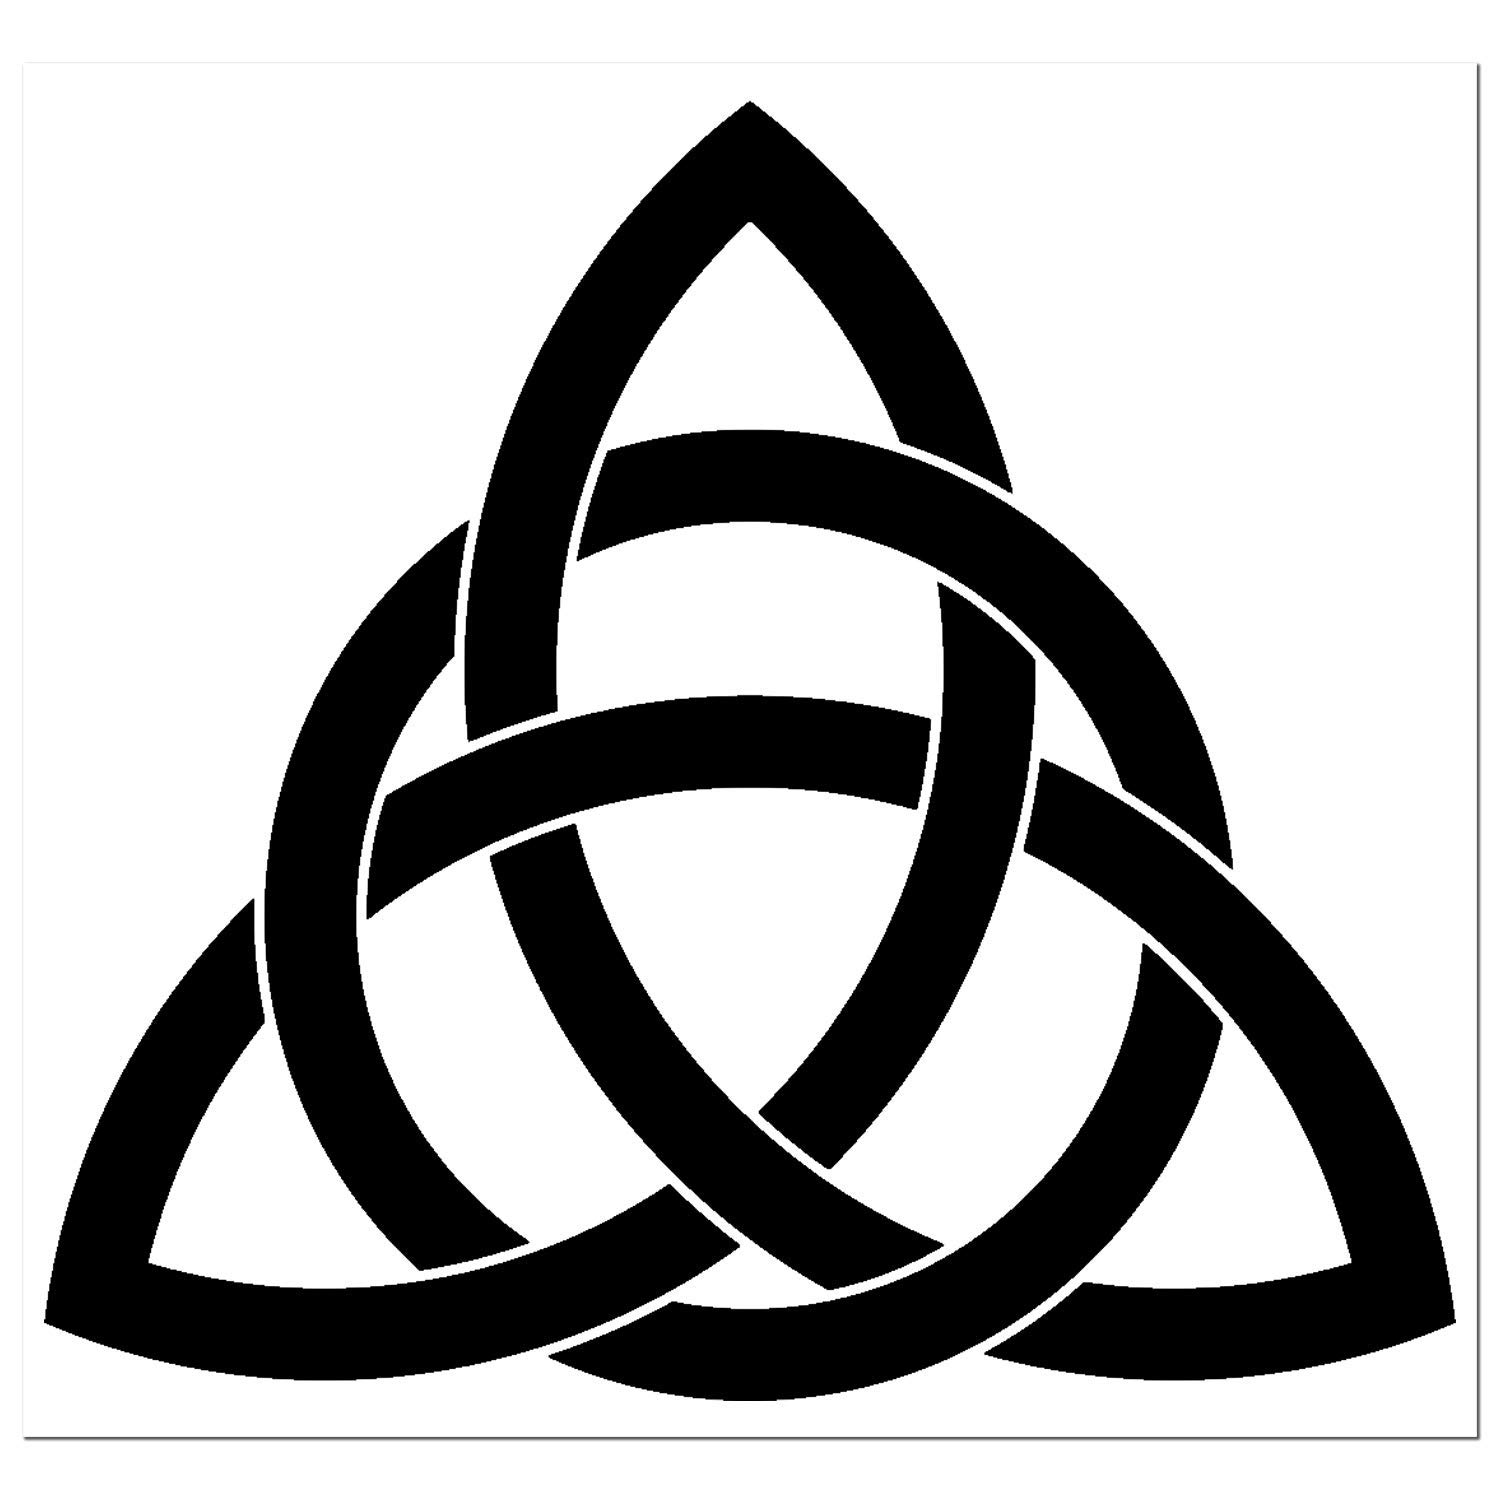 Infinity Celtic Knot Decal//Sticker Trinity Knot Eternity Triquetra Style Holy Trinity Zippy Stickers Many Colors and Sizes to Choose From